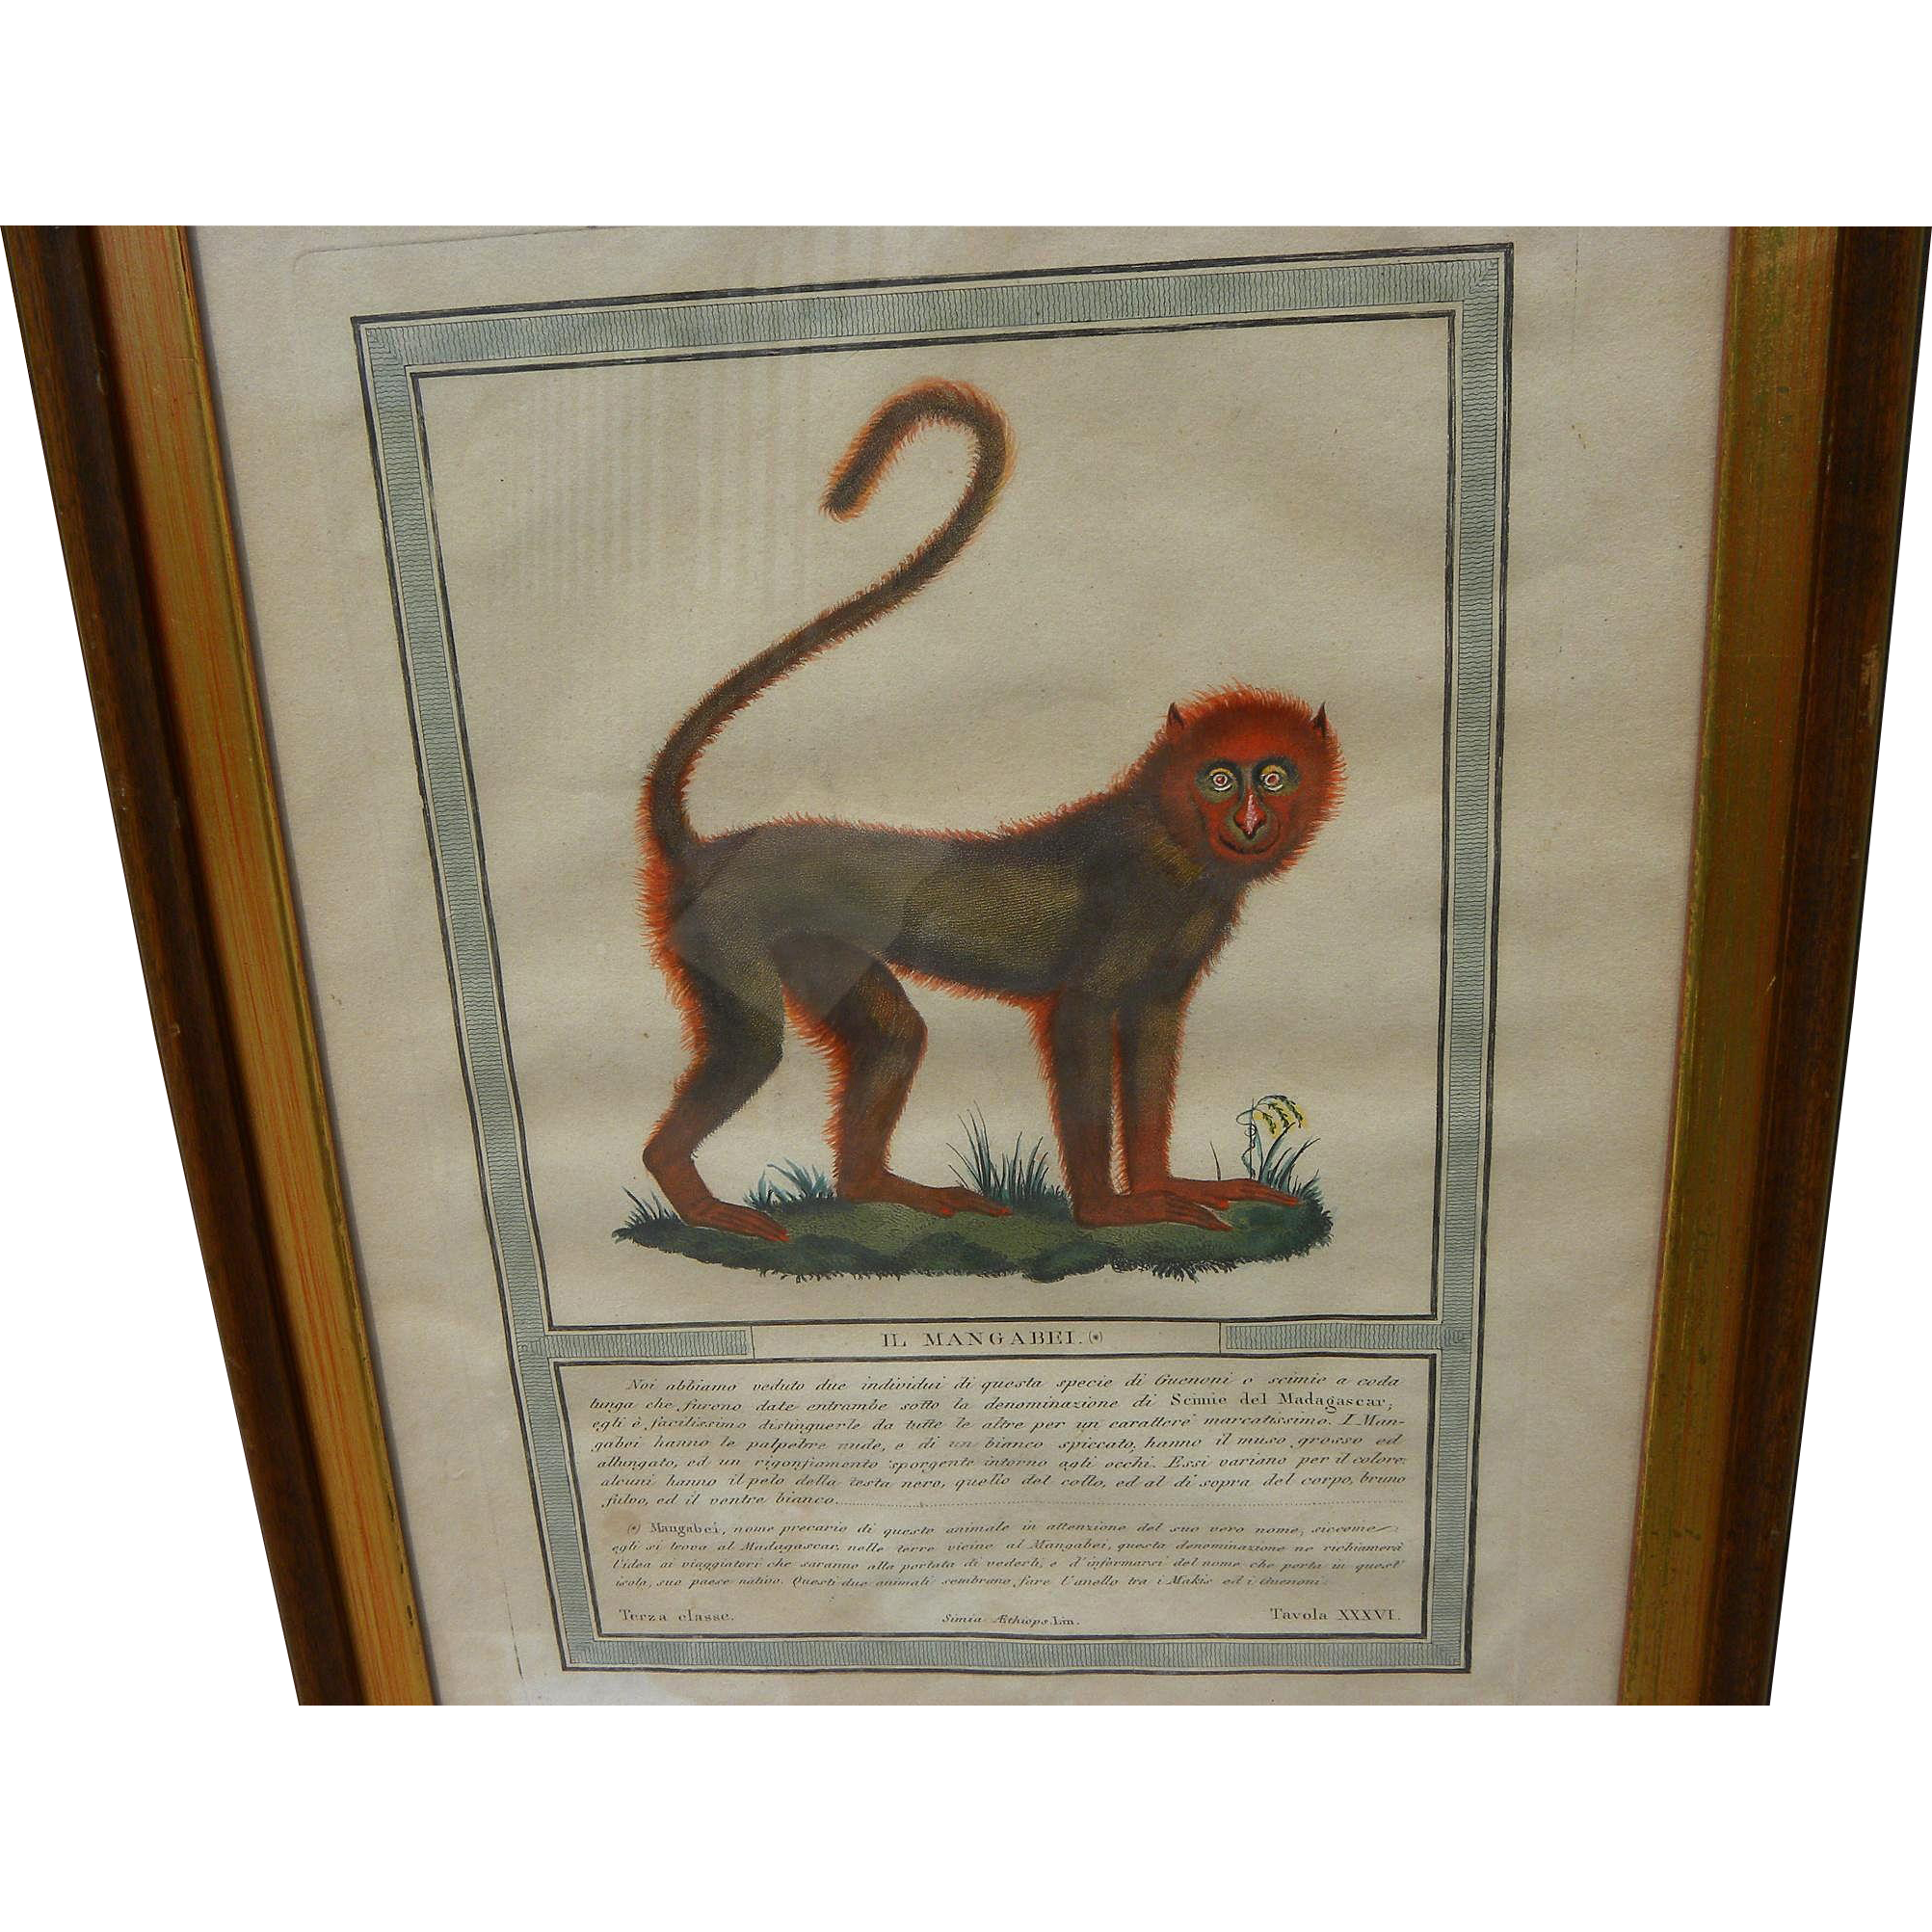 Decorative antique hand colored engraving of an old world monkey by LUIGI RADOS (1773-1840)